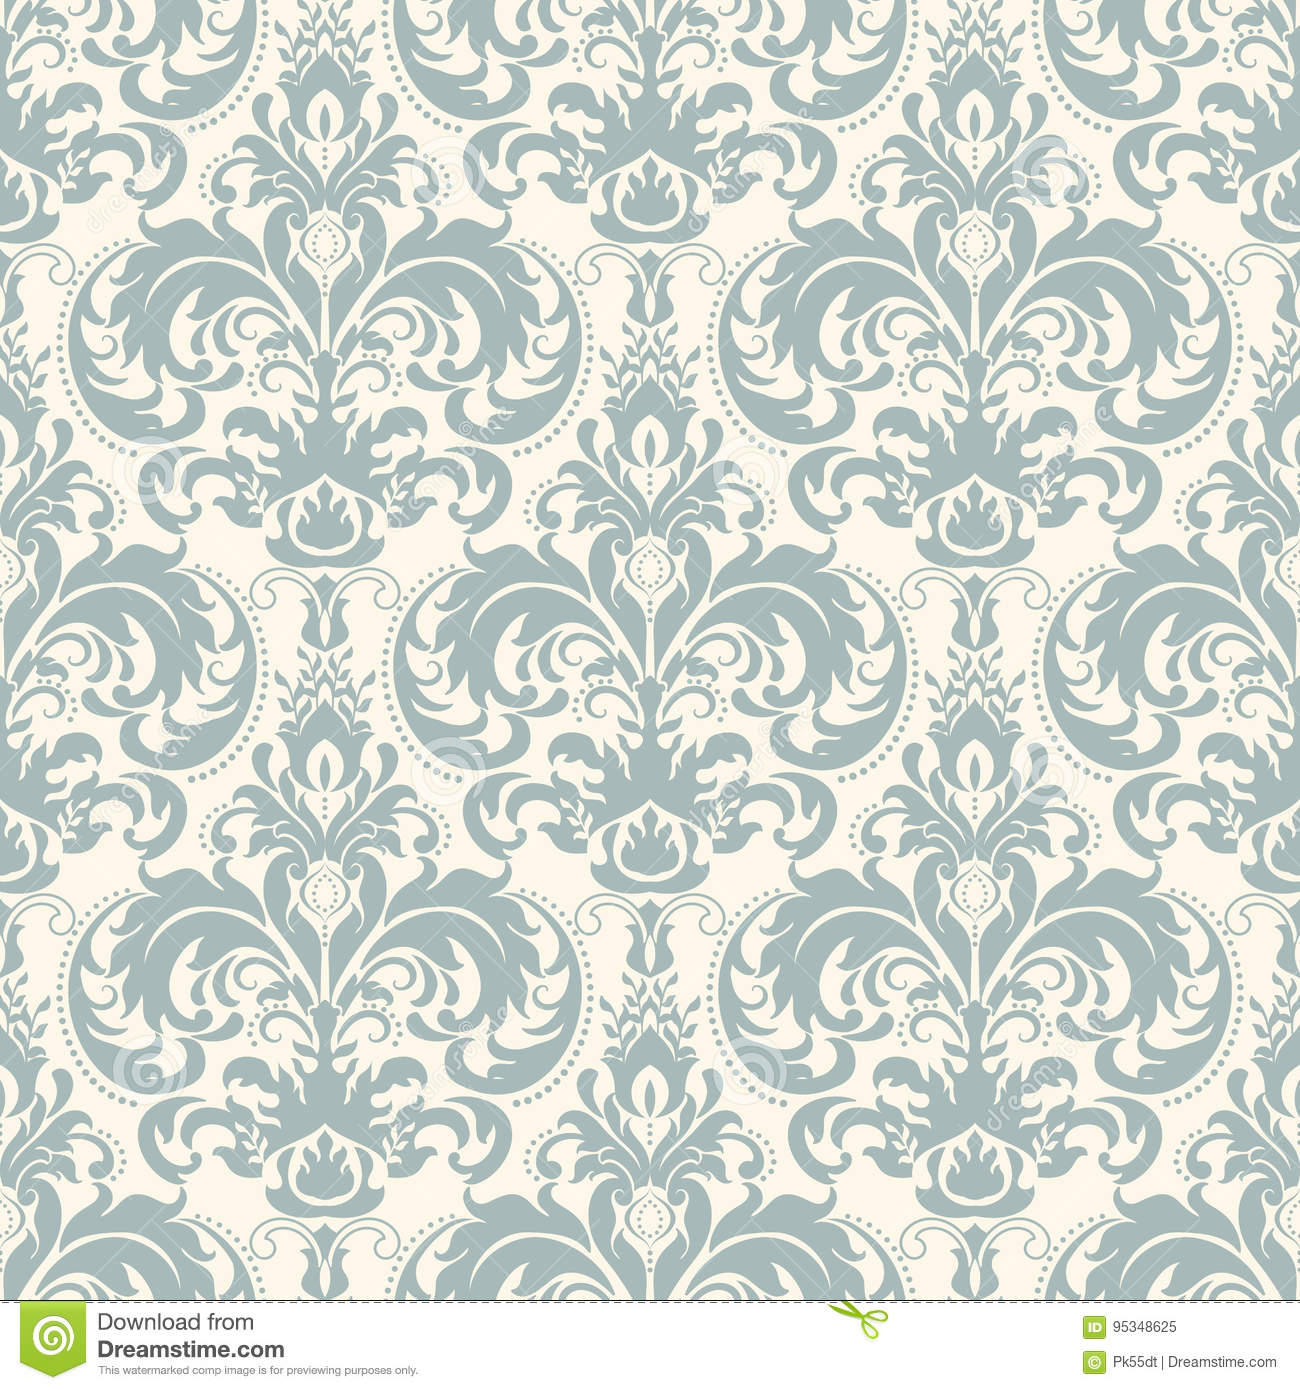 Damask seamless pattern background. Classical luxury old fashioned damask ornament, royal victorian seamless texture.